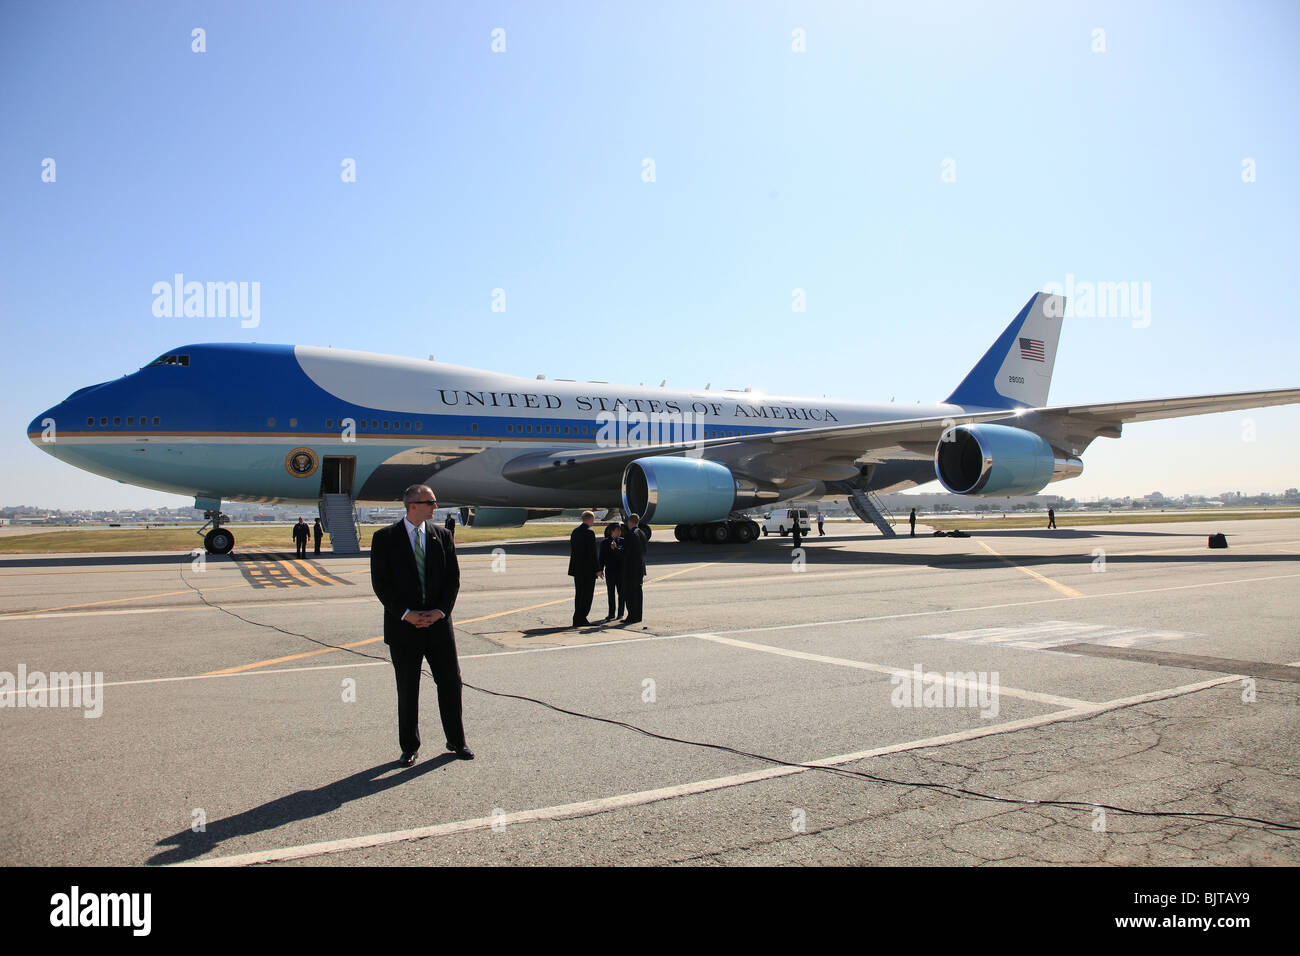 AIRFORCE ONE PRESIDENT BARACK OBAMA LANDS IN CALIFORNIA LONG BEACH CALIFORNIA CA USA 18 March 2009 - Stock Image